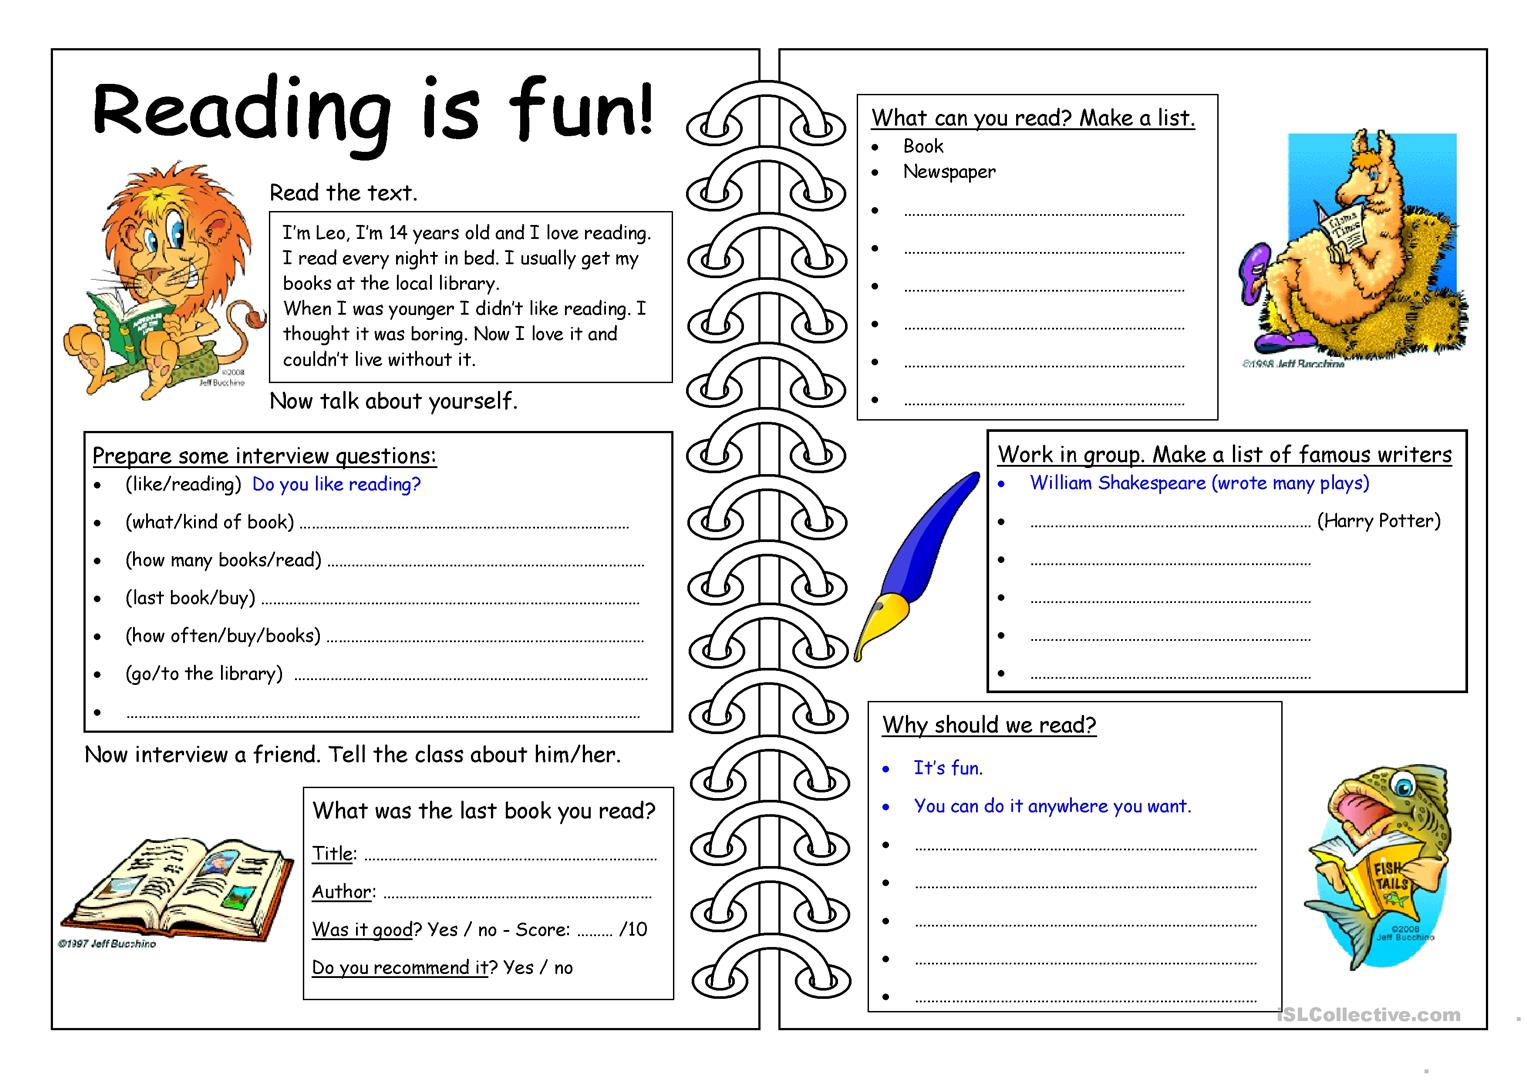 Hobbies Worksheet Esl